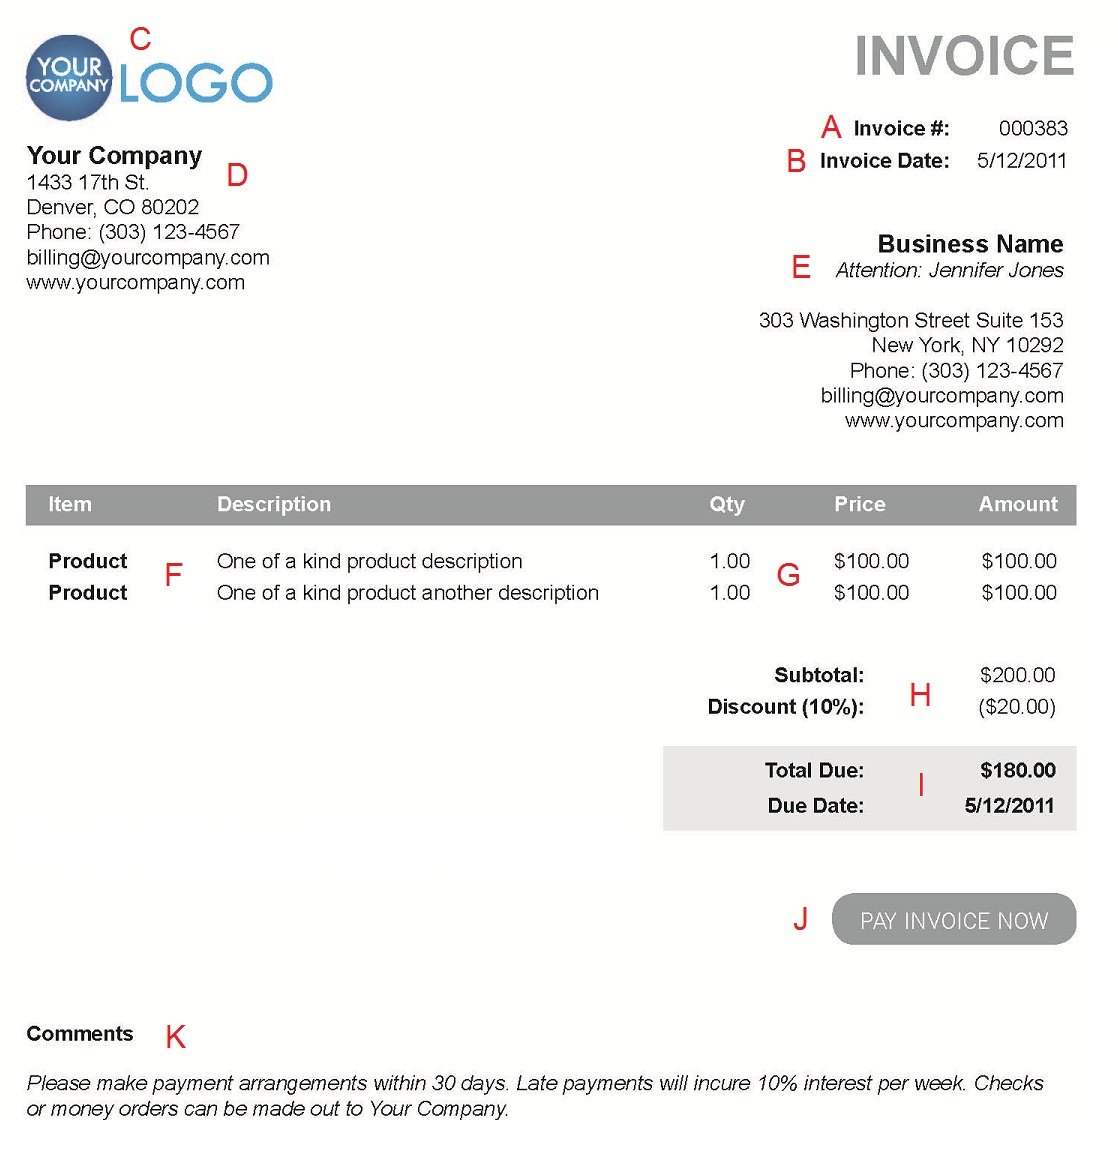 Pigbrotherus  Outstanding The  Different Sections Of An Electronic Payment Invoice With Extraordinary A  With Beautiful How To Find Invoice Price For New Car Also Example Proforma Invoice In Addition Architect Invoice And Free Tax Invoice Template As Well As Ms Custom Invoice Template Additionally Invoice Adress From Paysimplecom With Pigbrotherus  Extraordinary The  Different Sections Of An Electronic Payment Invoice With Beautiful A  And Outstanding How To Find Invoice Price For New Car Also Example Proforma Invoice In Addition Architect Invoice From Paysimplecom